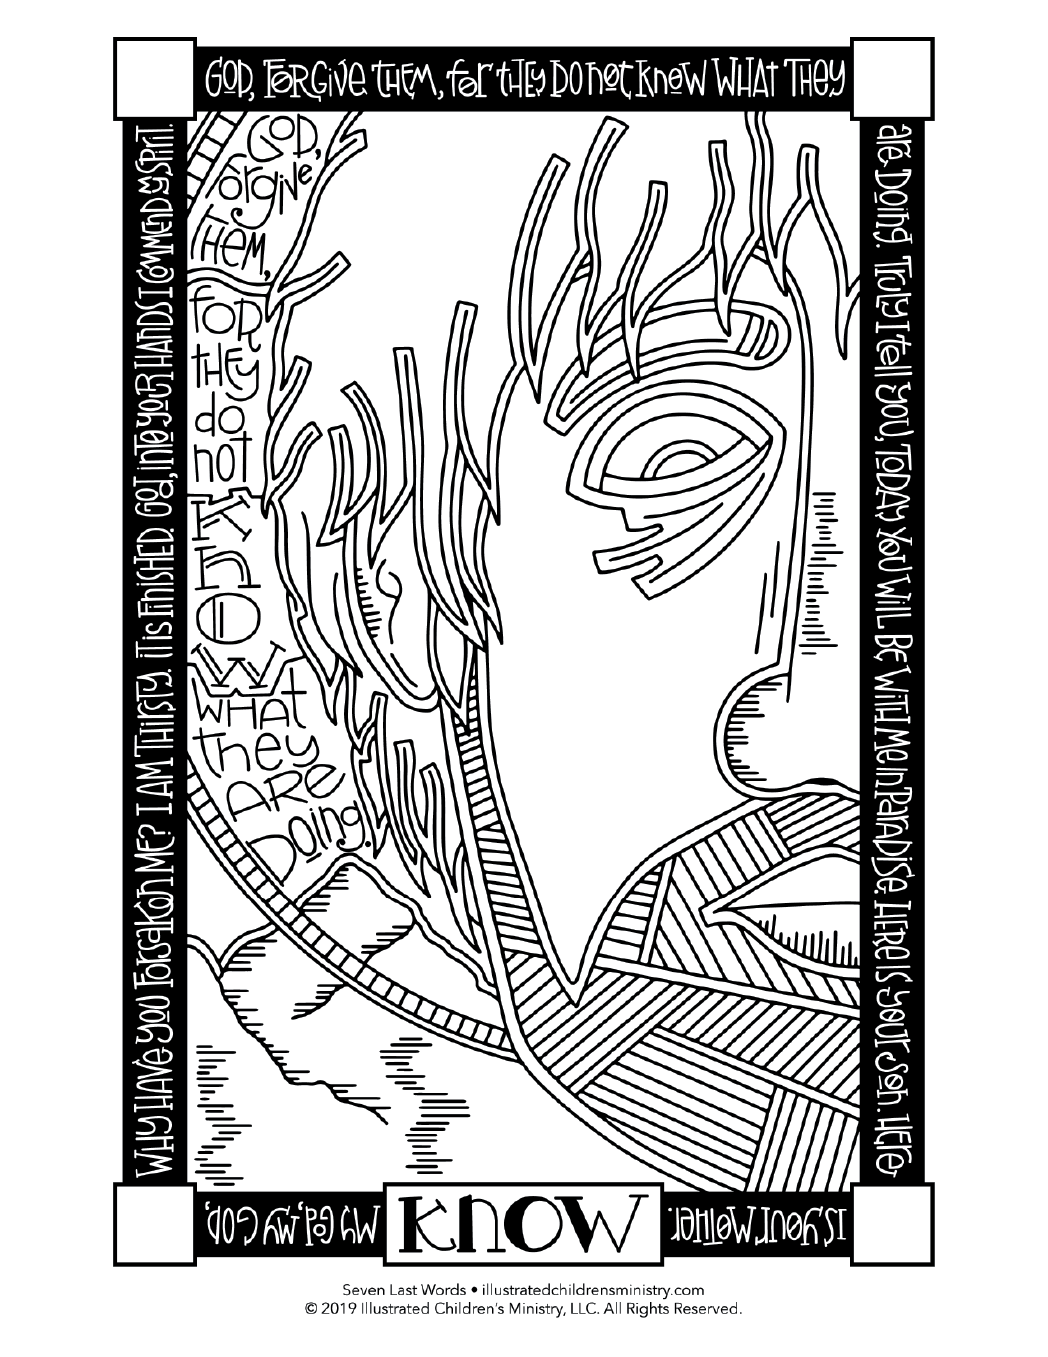 Seven Last Words coloring page - Know